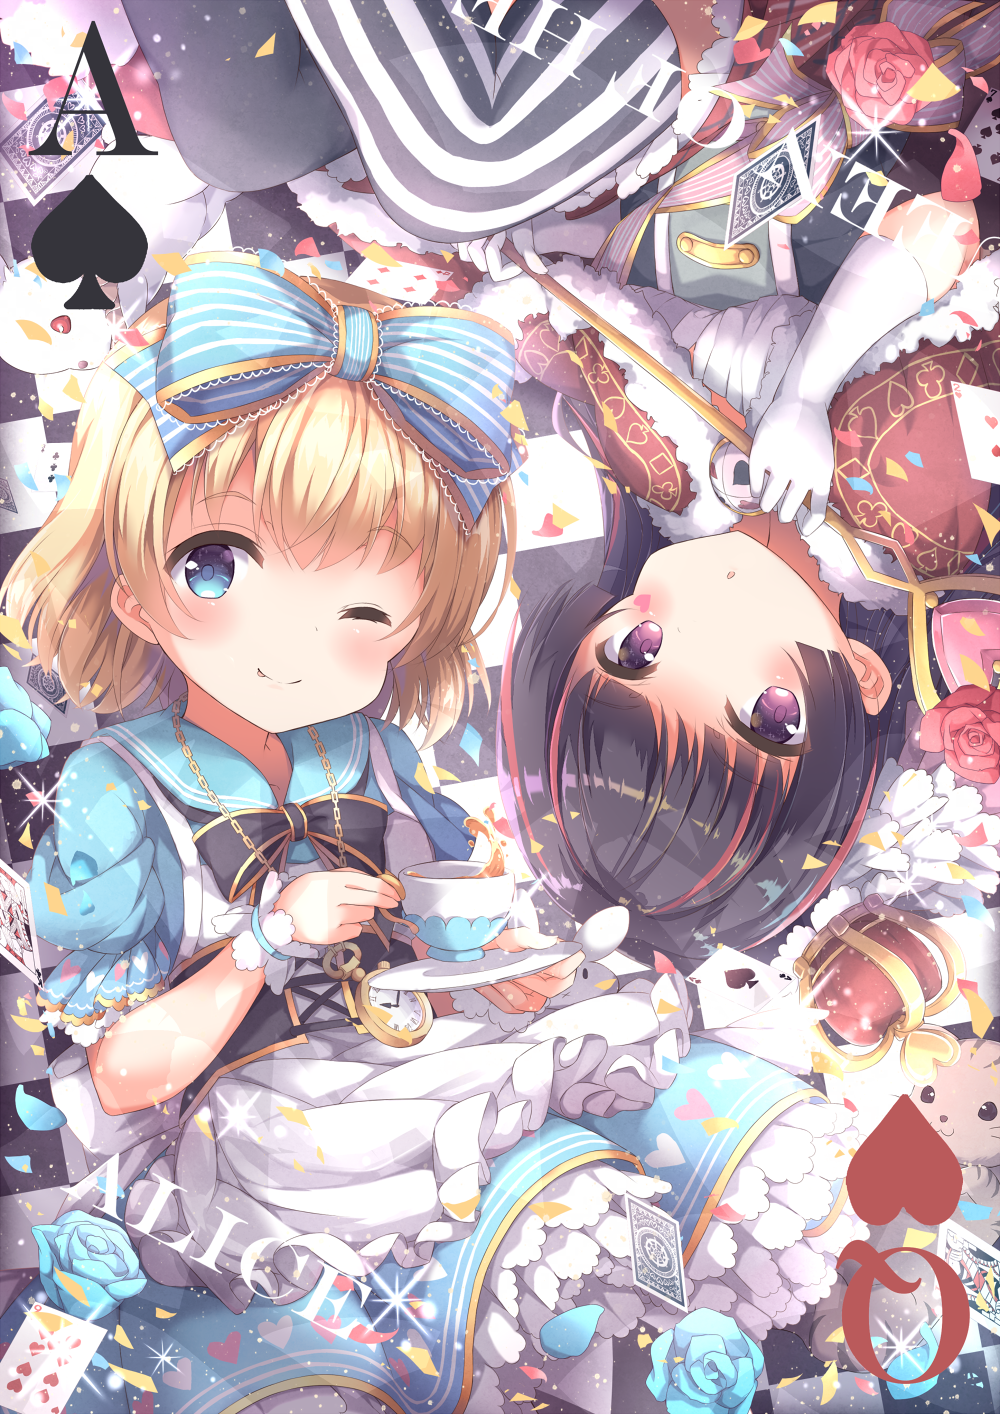 2girls :o ;) alice_(wonderland) alice_in_wonderland apron bangs black_hair black_legwear black_neckwear blonde_hair blue_bow blue_dress blue_eyes blue_flower blue_rose bow bowtie capelet card card_(medium) cat commentary_request corset crown crown_removed cup dress elbow_gloves facial_mark flower frilled_apron frills fur-trimmed_capelet fur_trim gloves hair_bow heart highres holding_scepter looking_at_viewer mismatched_legwear multicolored_hair multiple_girls niwasane_(saneatsu03) one_eye_closed petals pink_flower pink_ribbon pink_rose playing_card pocket_watch queen_of_hearts rabbit red_capelet redhead ribbon rose sailor_dress scepter short_hair short_sleeves smile sparkle streaked_hair striped striped_bow striped_legwear striped_ribbon tea teacup thigh-highs vertical-striped_legwear vertical_stripes violet_eyes watch white_apron white_gloves wrist_cuffs